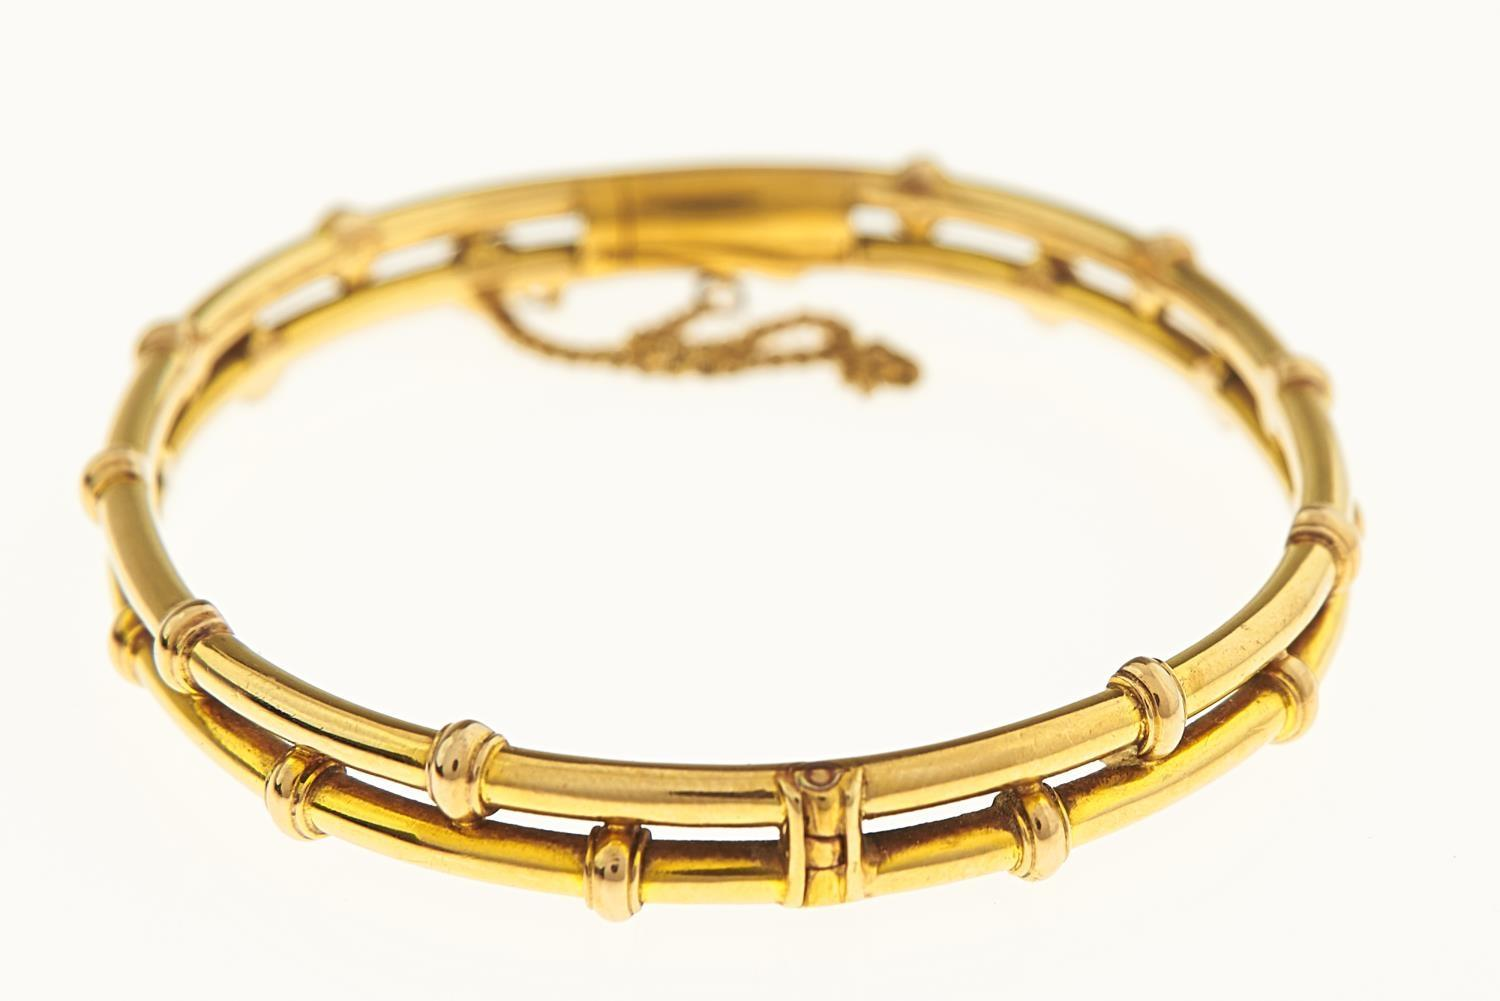 A GOLD BAMBOO FORM BANGLE, EARLY 20TH C, 64MM, MARKED 18CT, 14G Good condition